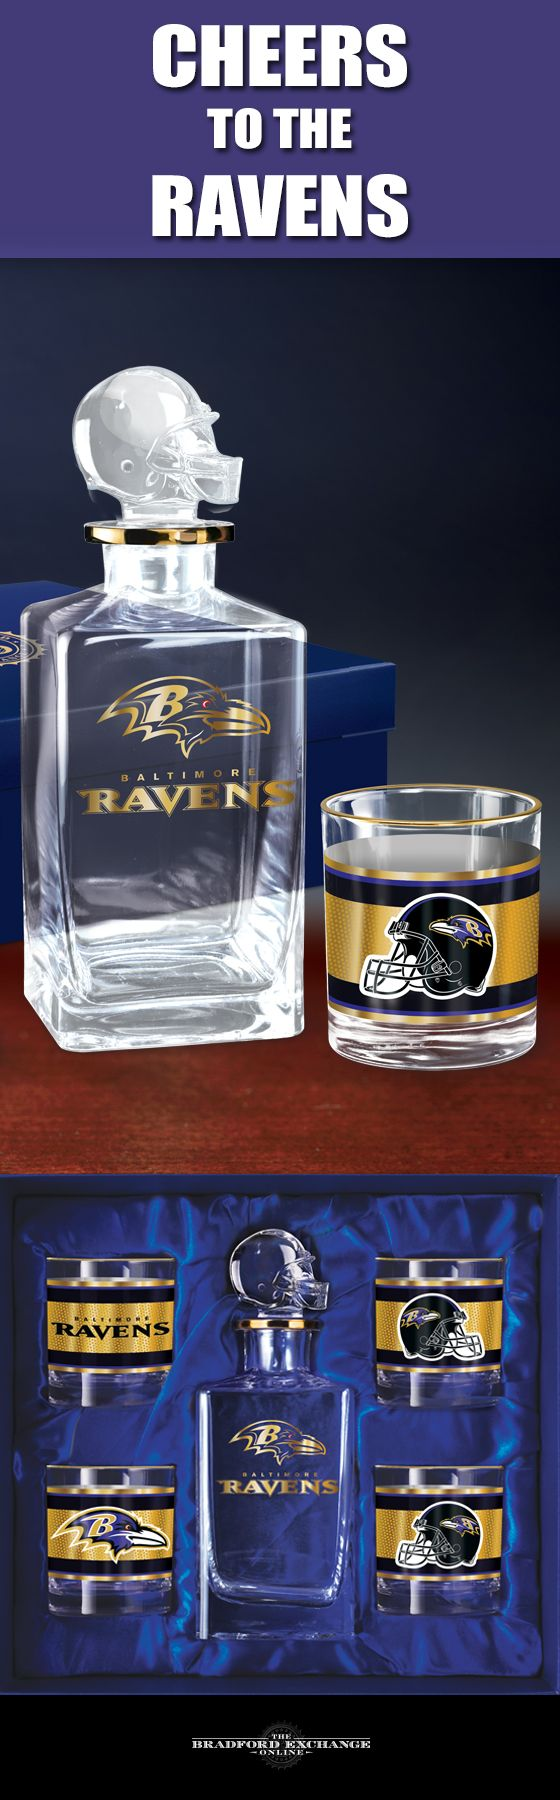 Raise a toast to your Baltimore Ravens with a handsome 5-piece decanter set. This officially-licensed NFL barware set includes a crystal-clear decanter with a custom helmet topper, 4 team icon glasses rimmed in gleaming 12K gold and a satin-lined gift box.